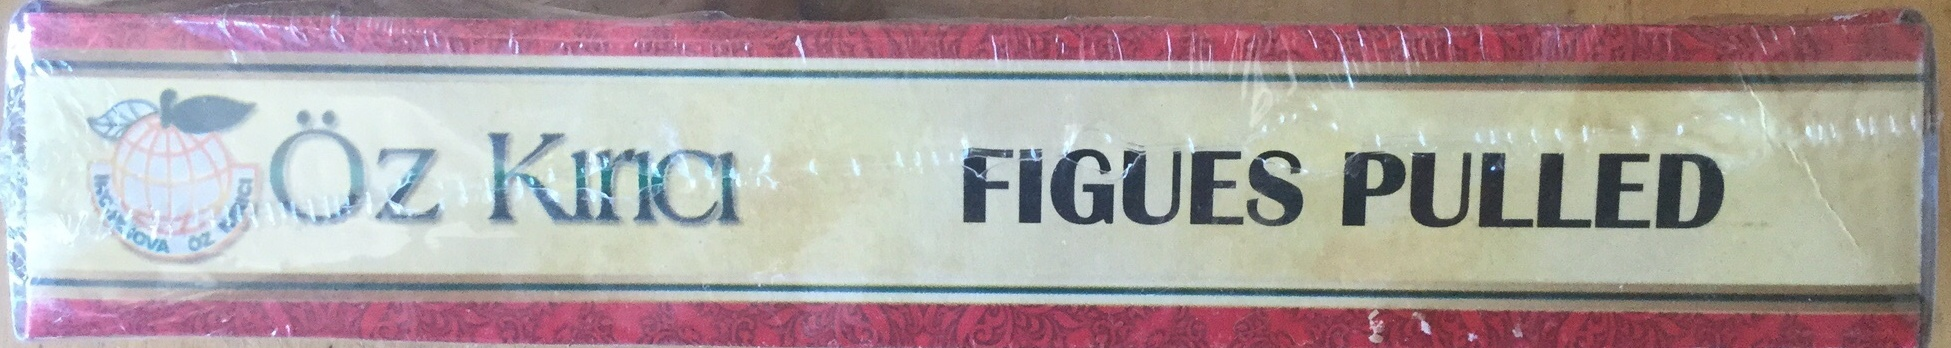 Figues pulled - Producto